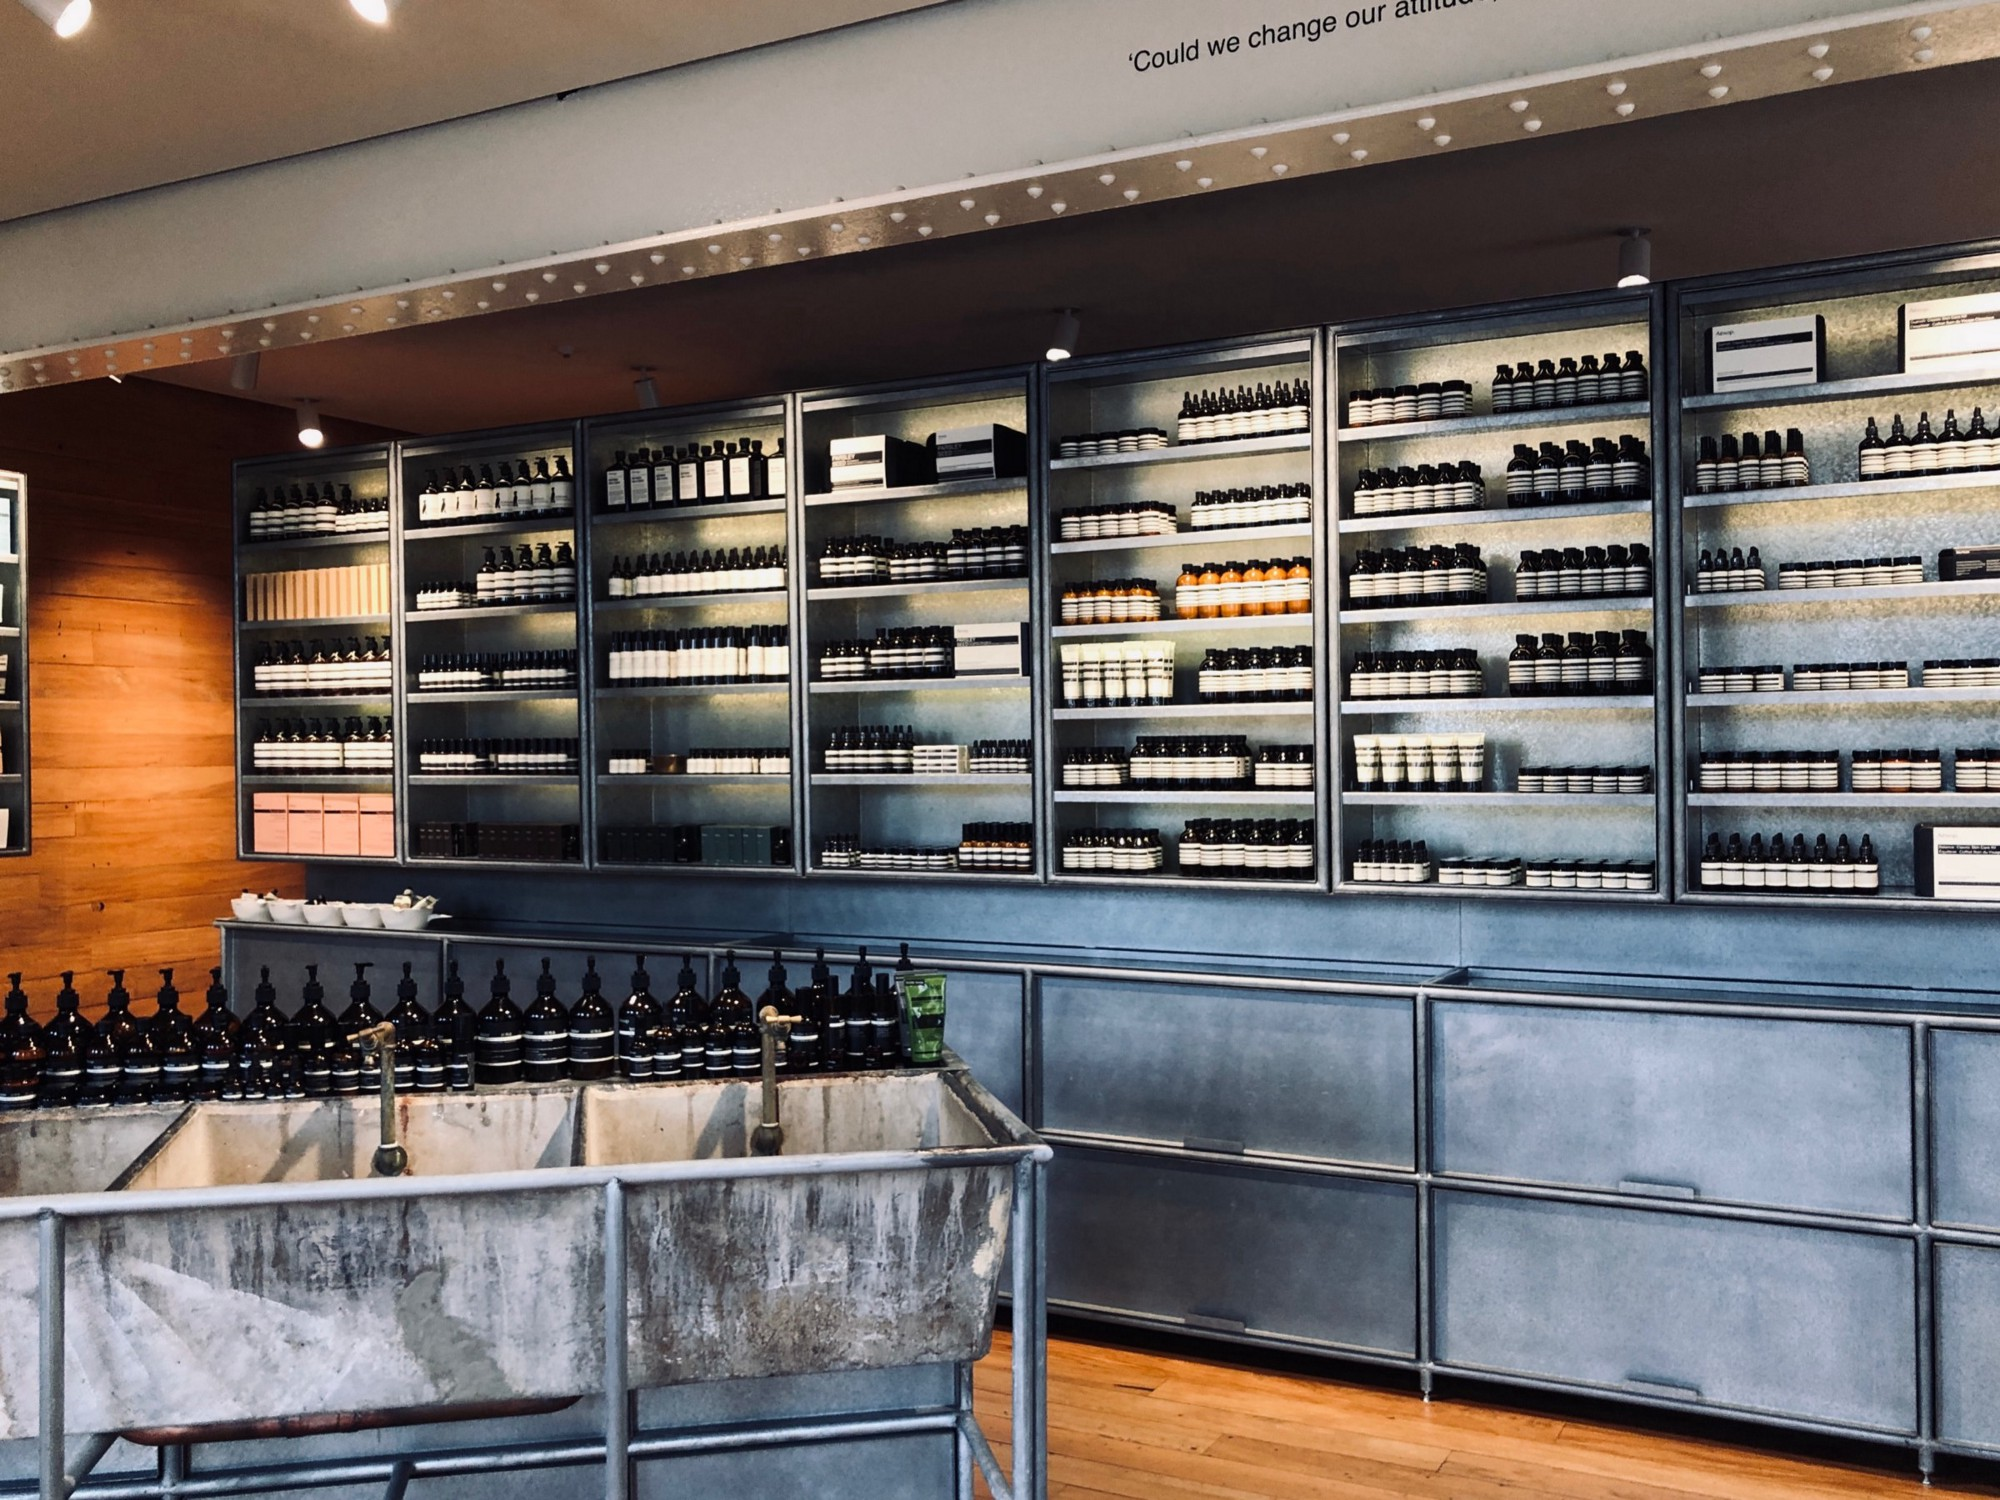 Aesop stores are renowned for their unique layouts